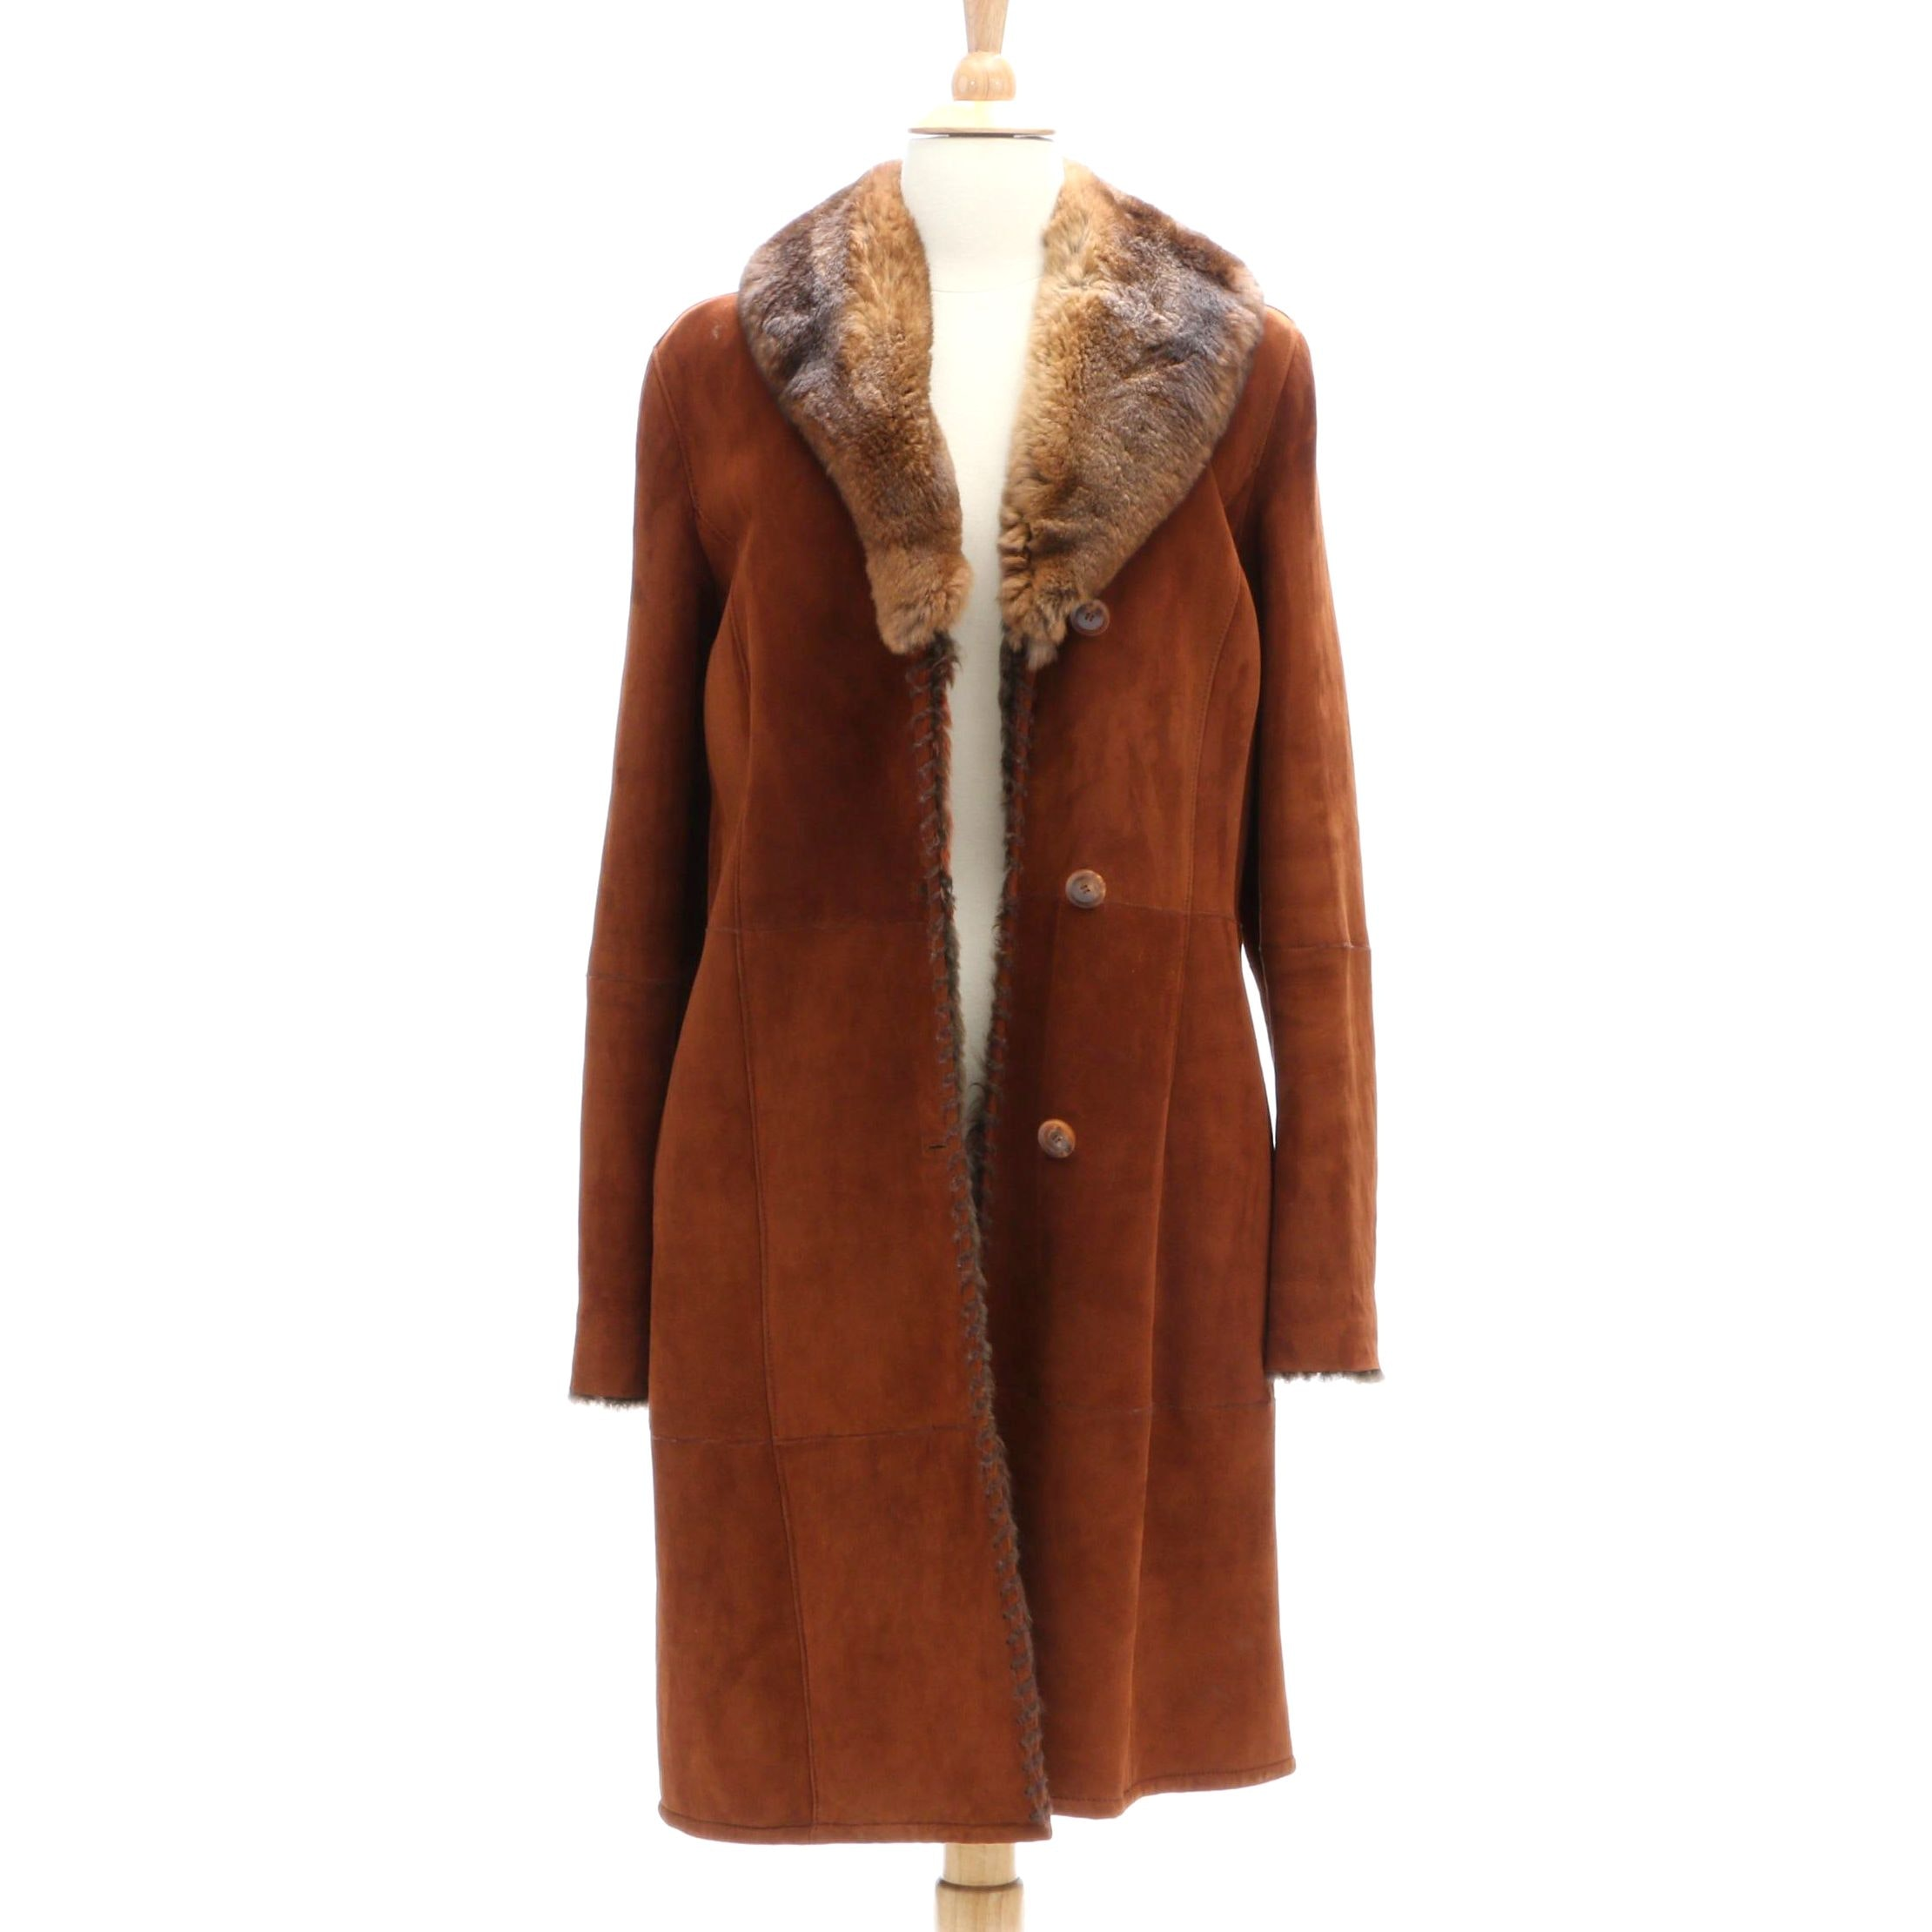 Diane Firsten Shearling Coat with Rabbit Fur Collar